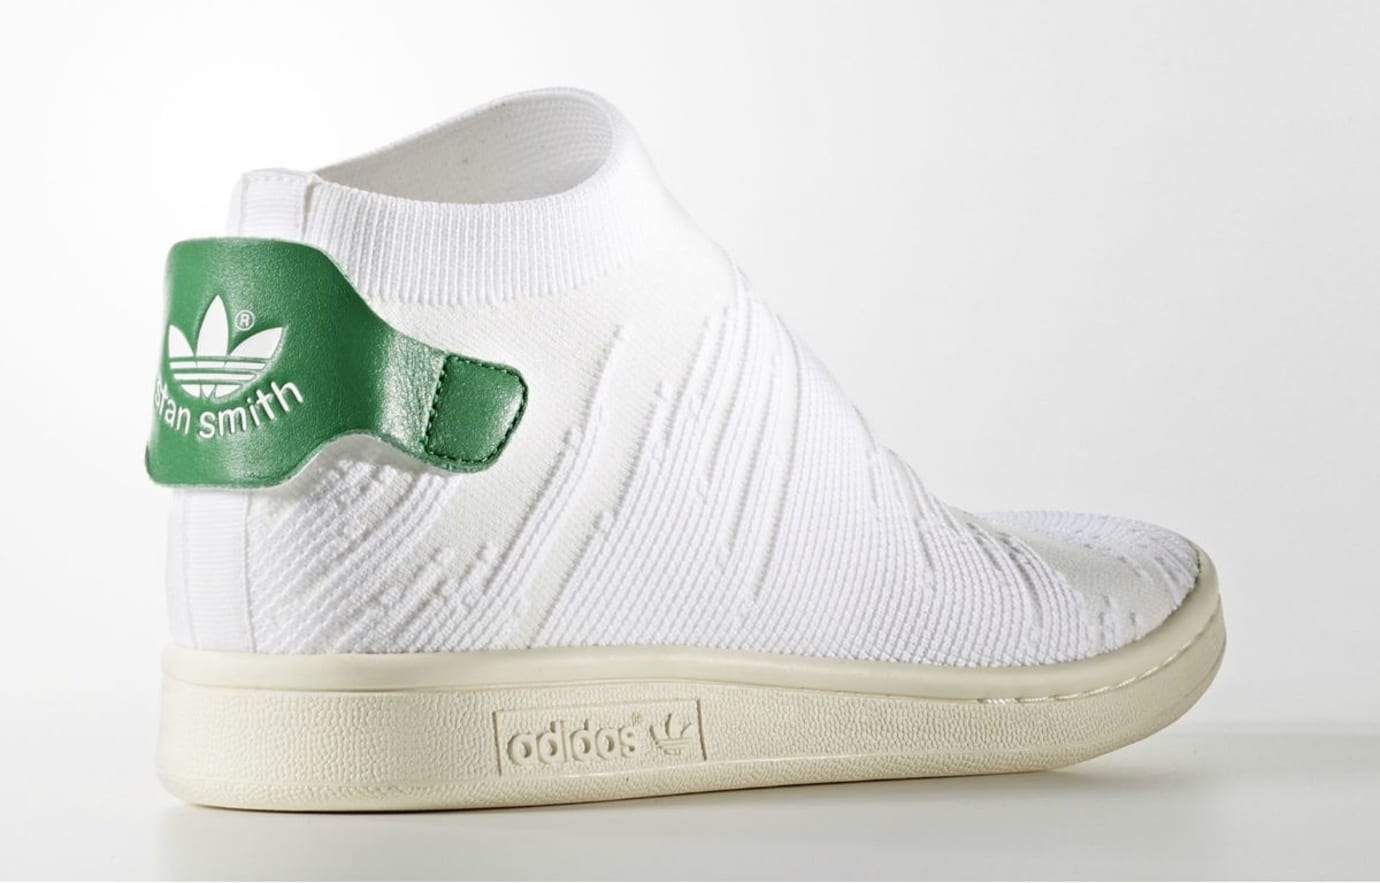 Adidas Stan Smith Sock Primeknit Classic Green Lateral